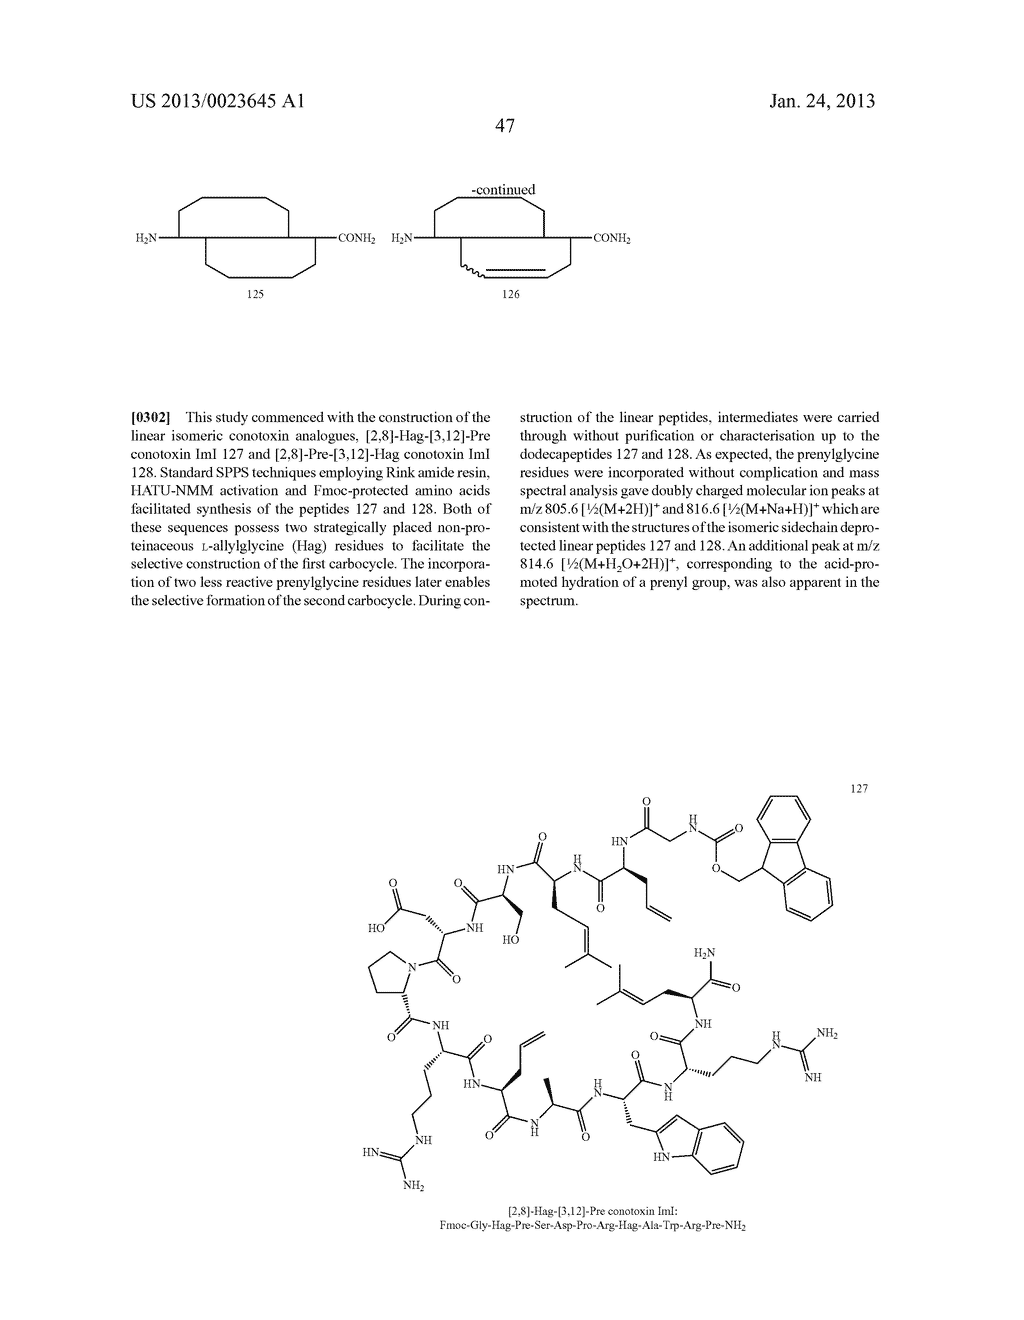 METHODS FOR THE SYNTHESIS OF DICARBA BRIDGES IN ORGANIC COMPOUNDS - diagram, schematic, and image 52